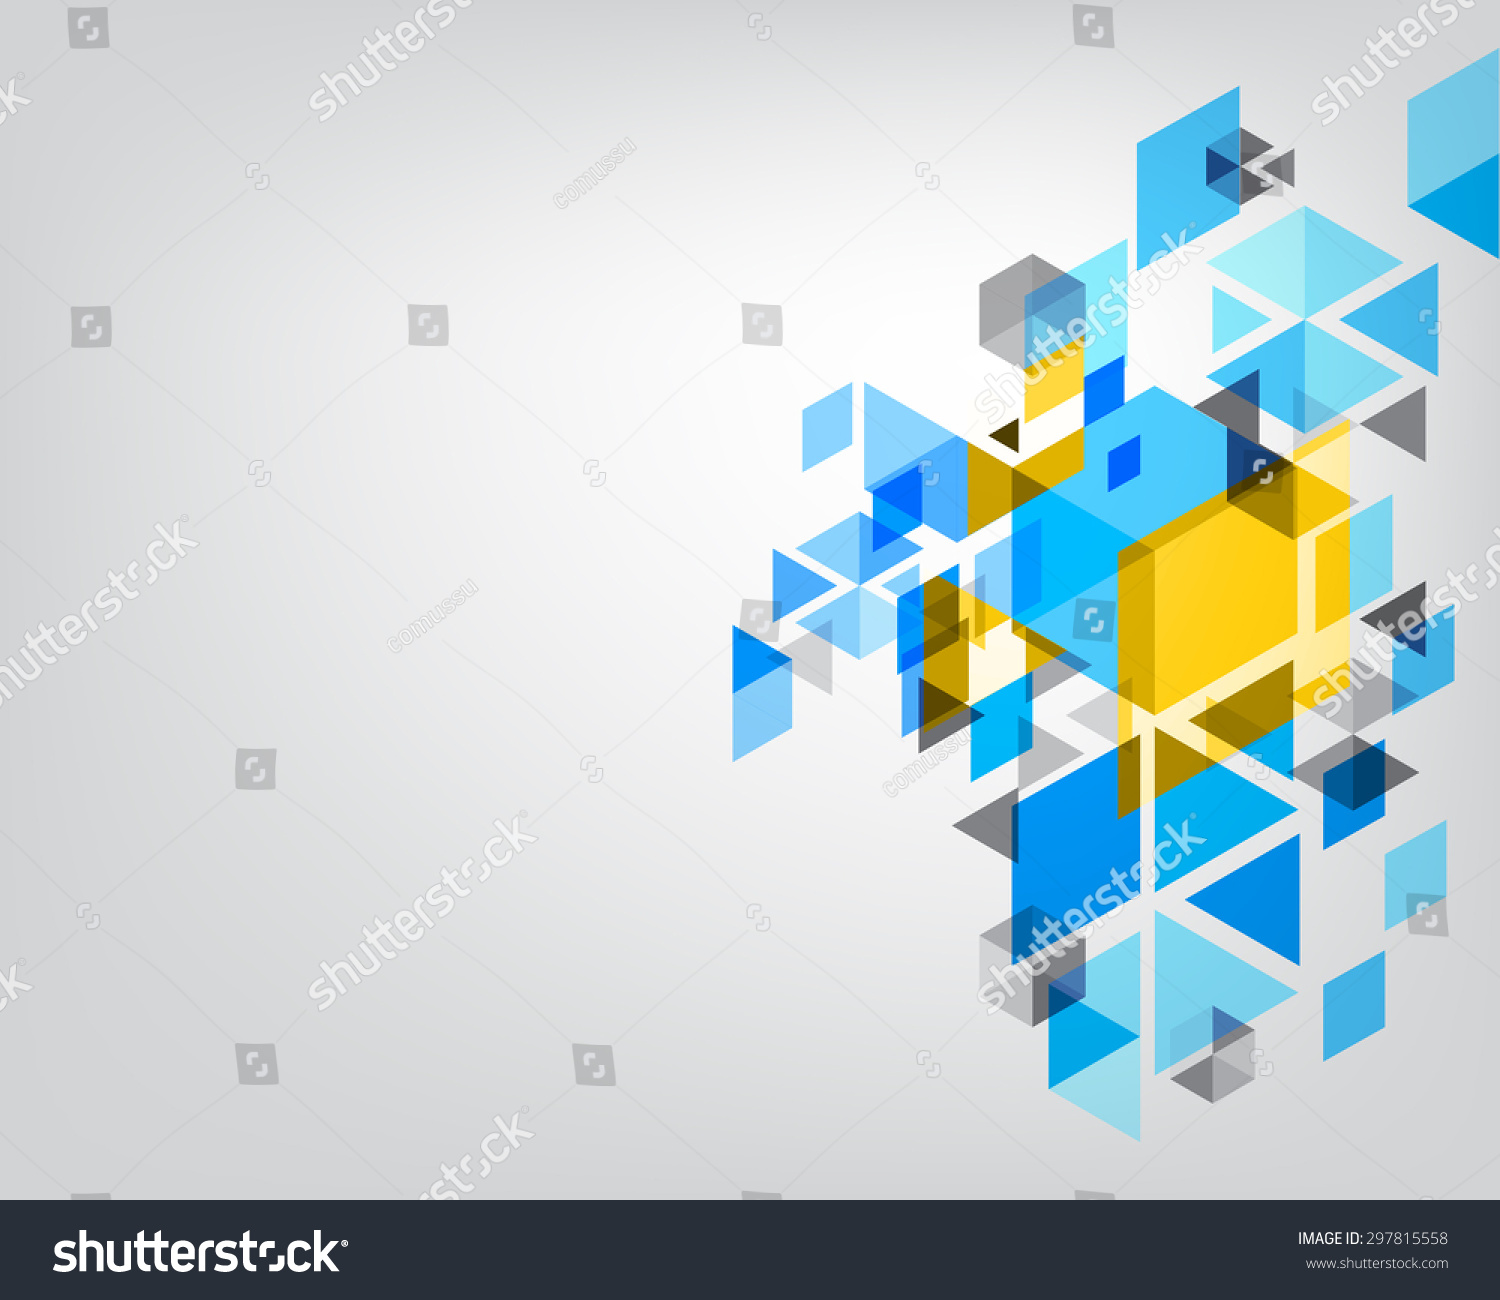 polygon shape abstract design - photo #11